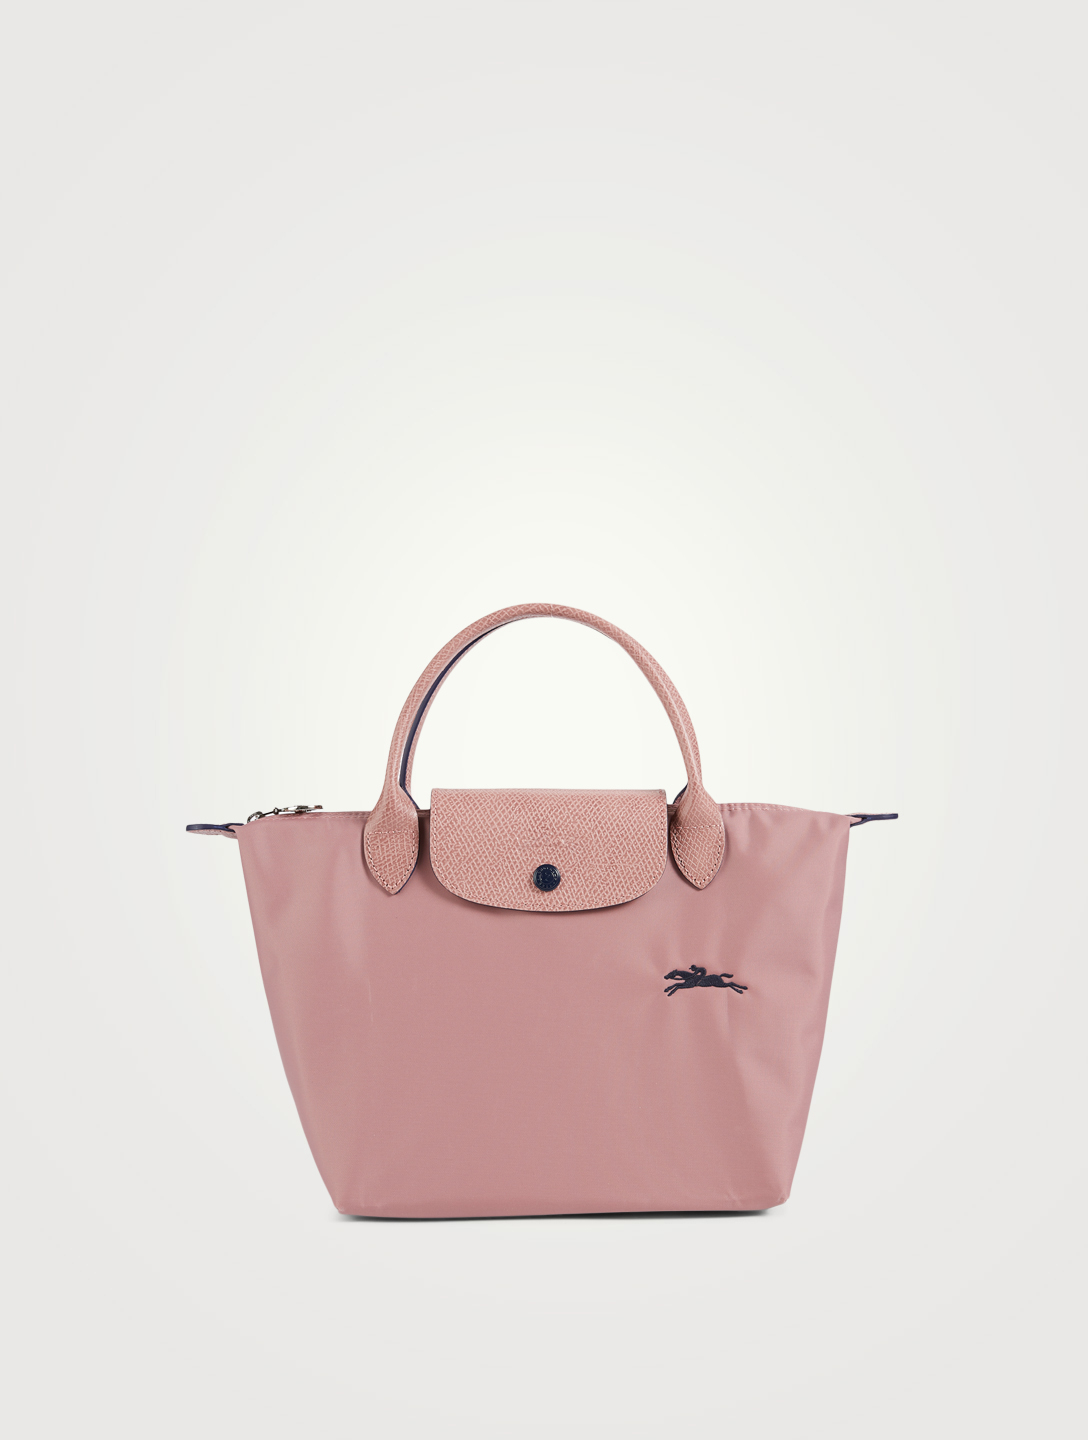 LONGCHAMP Small Le Pliage Club Top Handle Bag Women's Pink